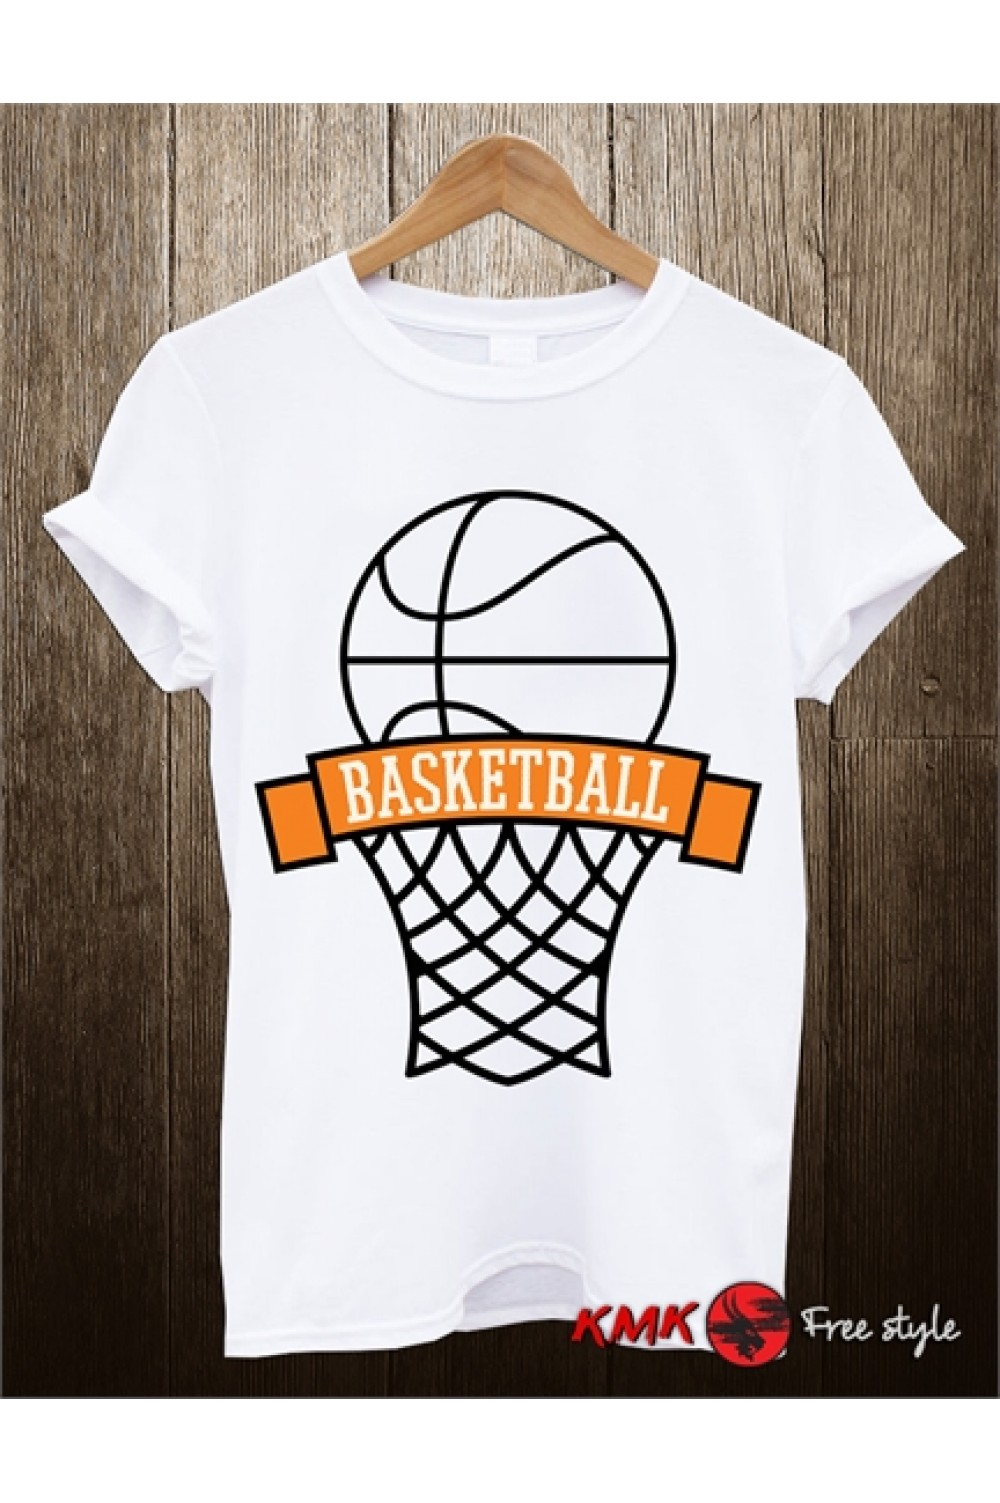 Basketball Printed T shirt | Basketball Tanktop | Basketball Tee